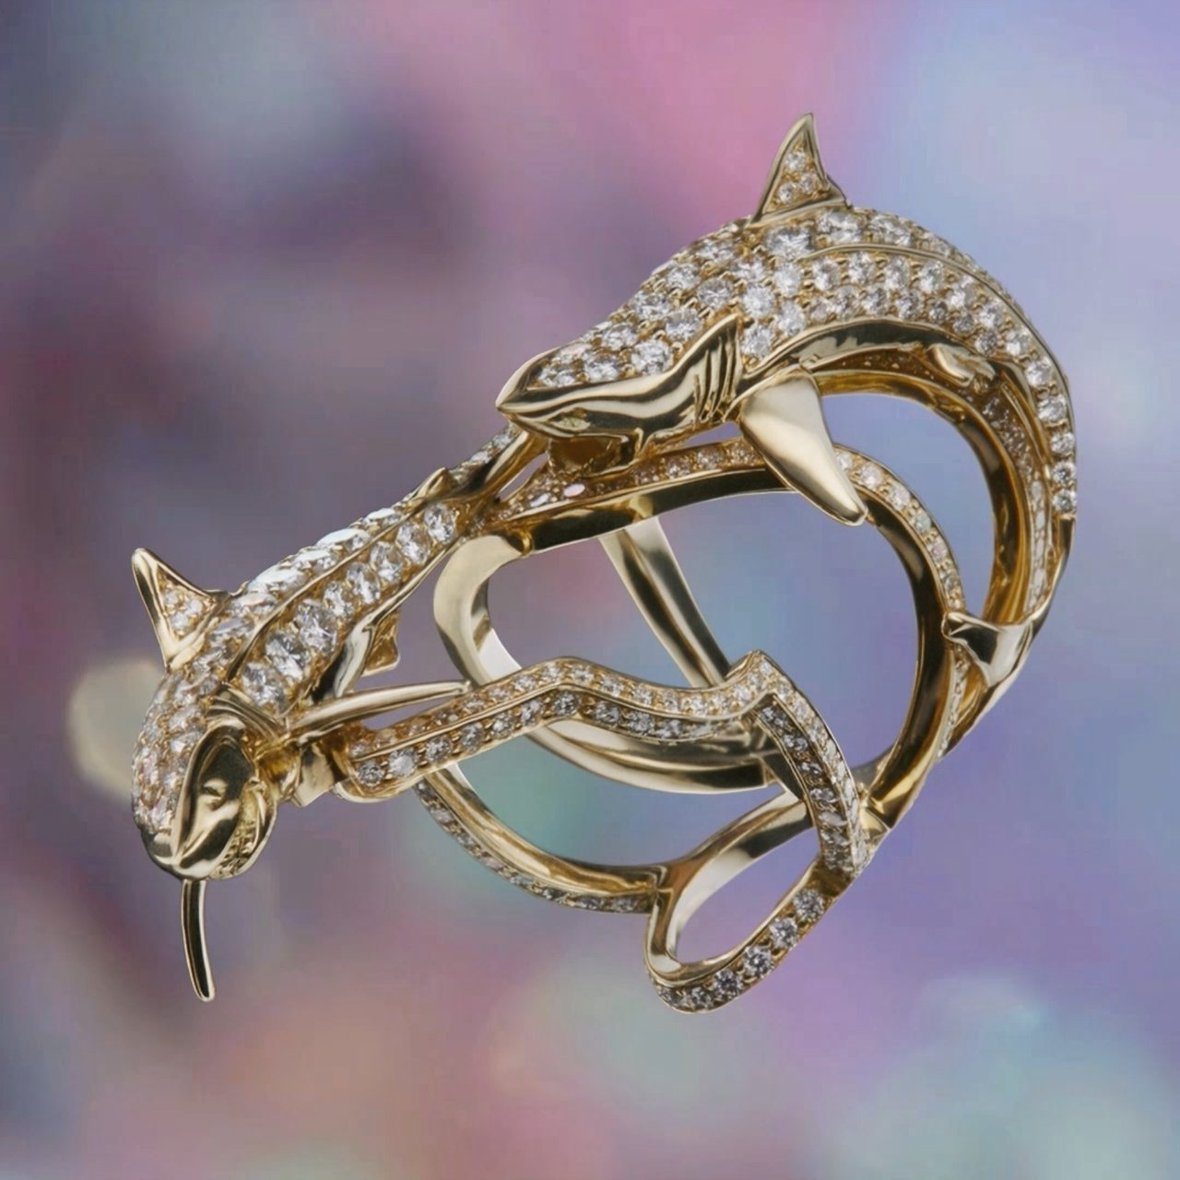 Gold Spiral Collection featuring the Precious Double Shark Twist Ring With Diamonds